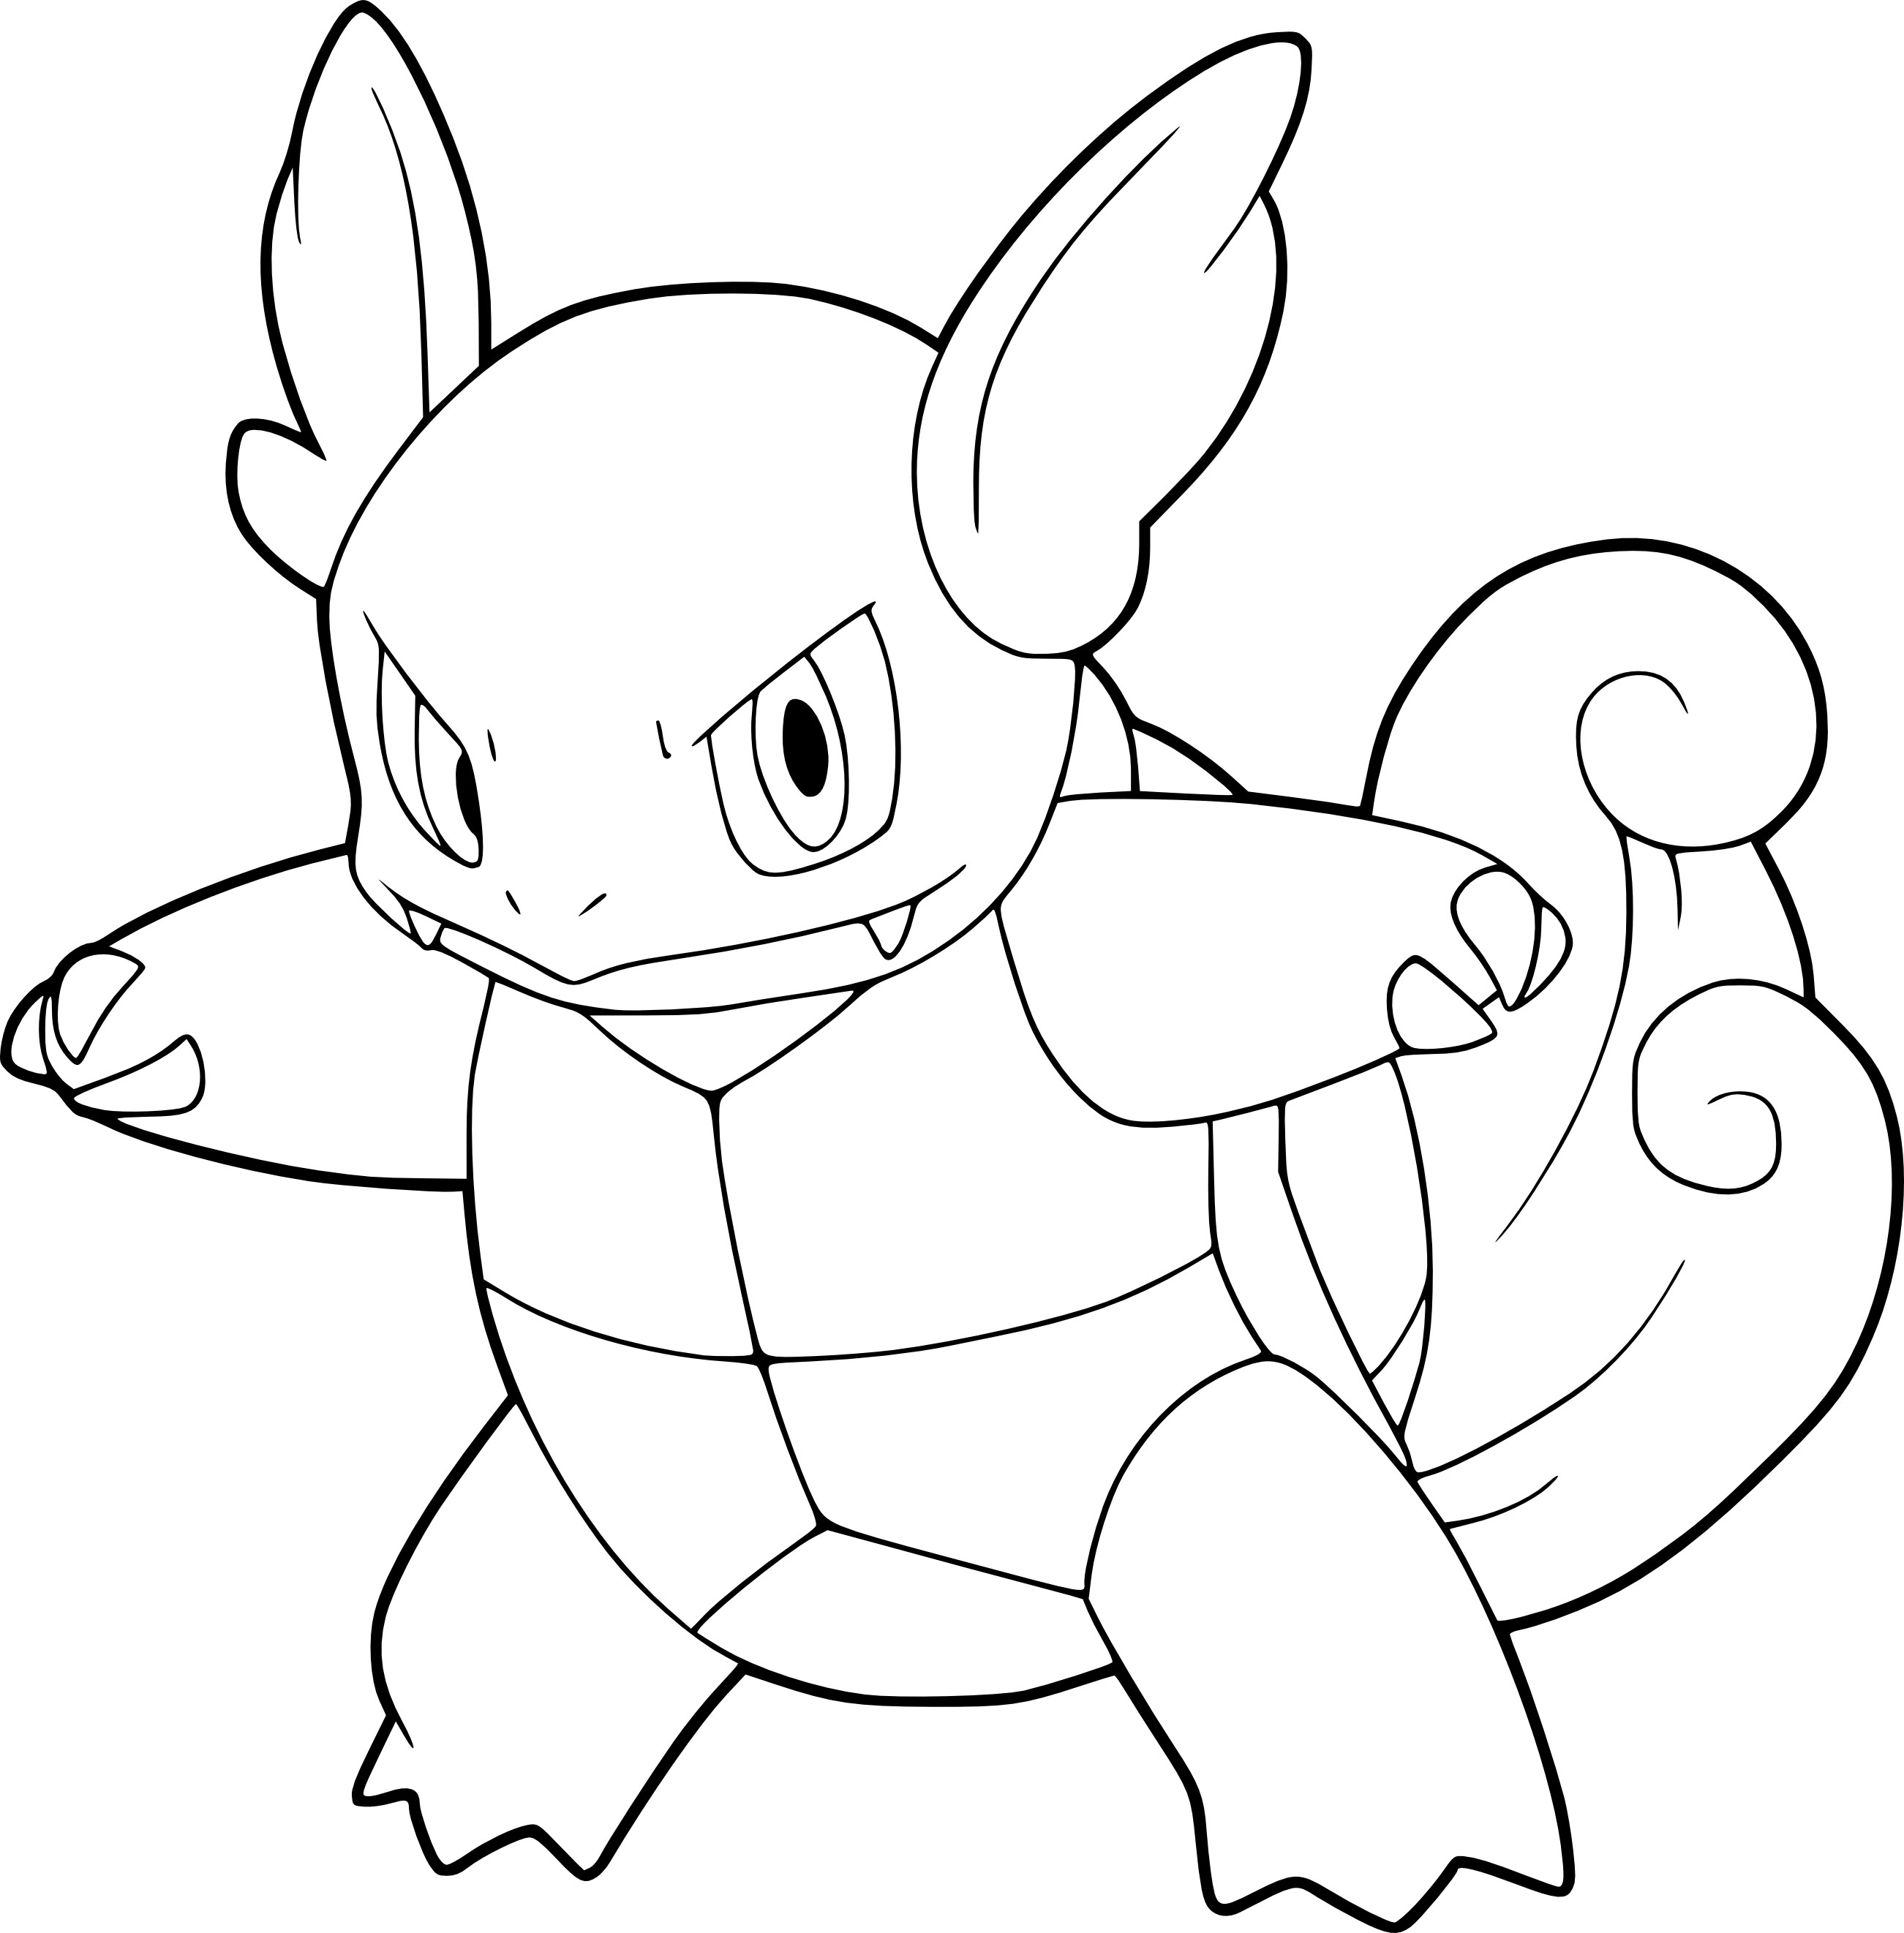 Coloriage Carabaffe Pokemon À Imprimer destiné Coloriage Pokemon